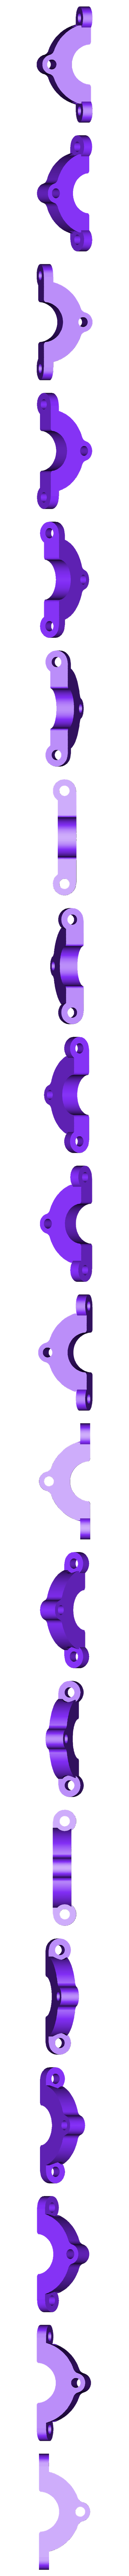 Clamp1.stl Download free STL file e3d V6 Kossel Rostock Delta effector • Template to 3D print, robC